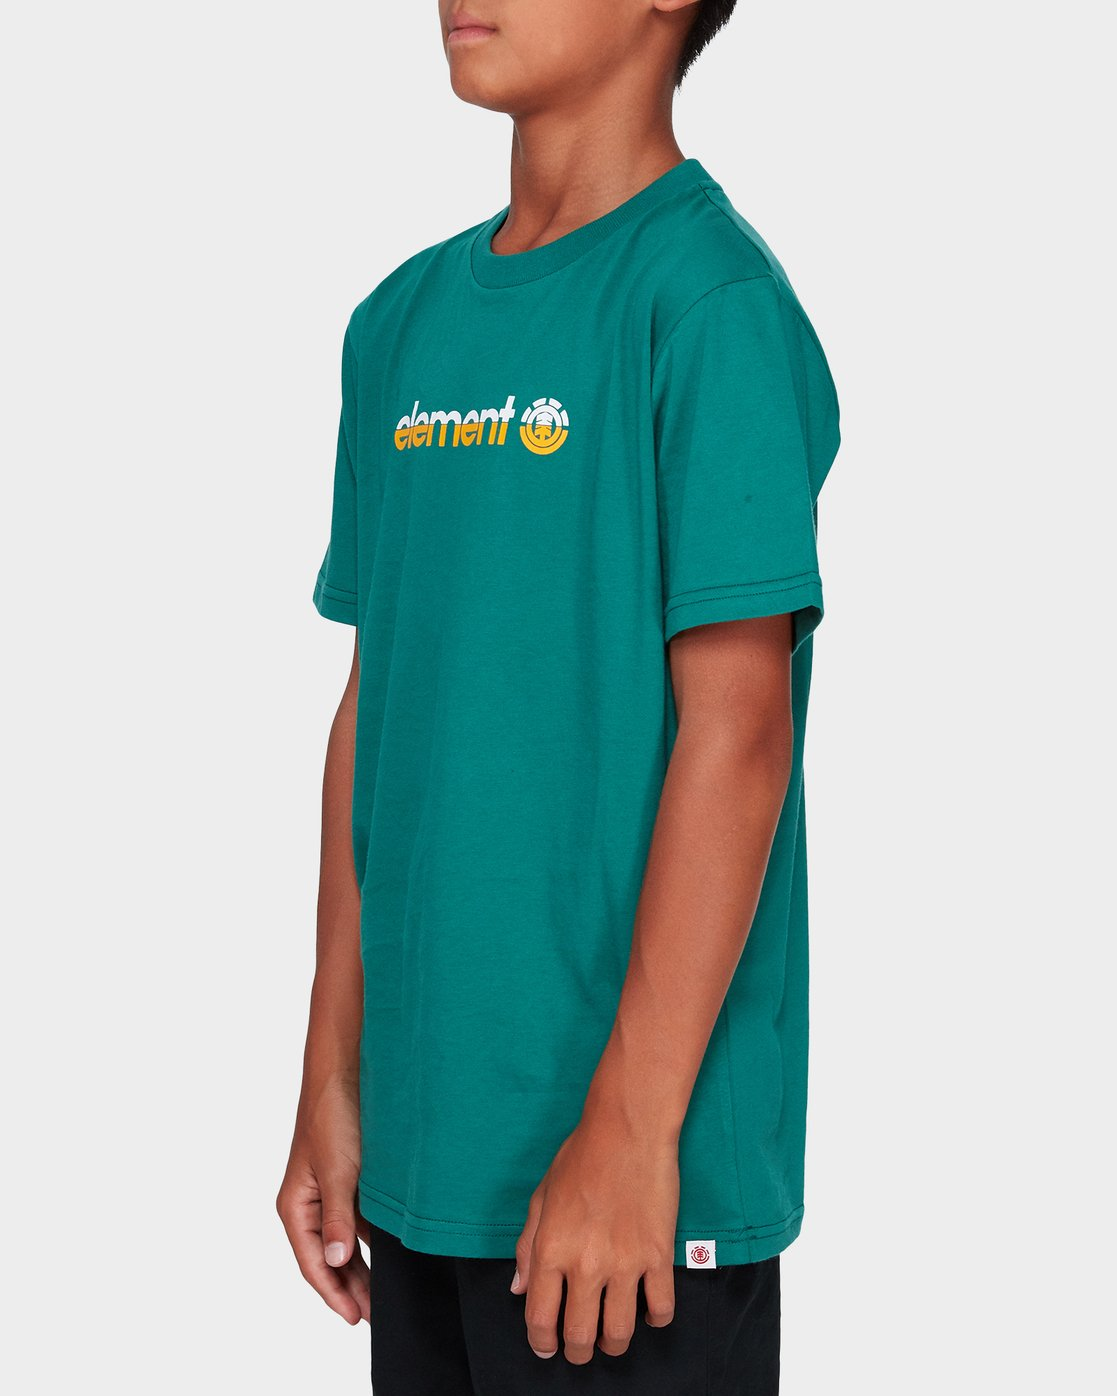 2 BOYS YOUTH HORIZONTAL SHORT SLEEVE TEE Green 383001 Element